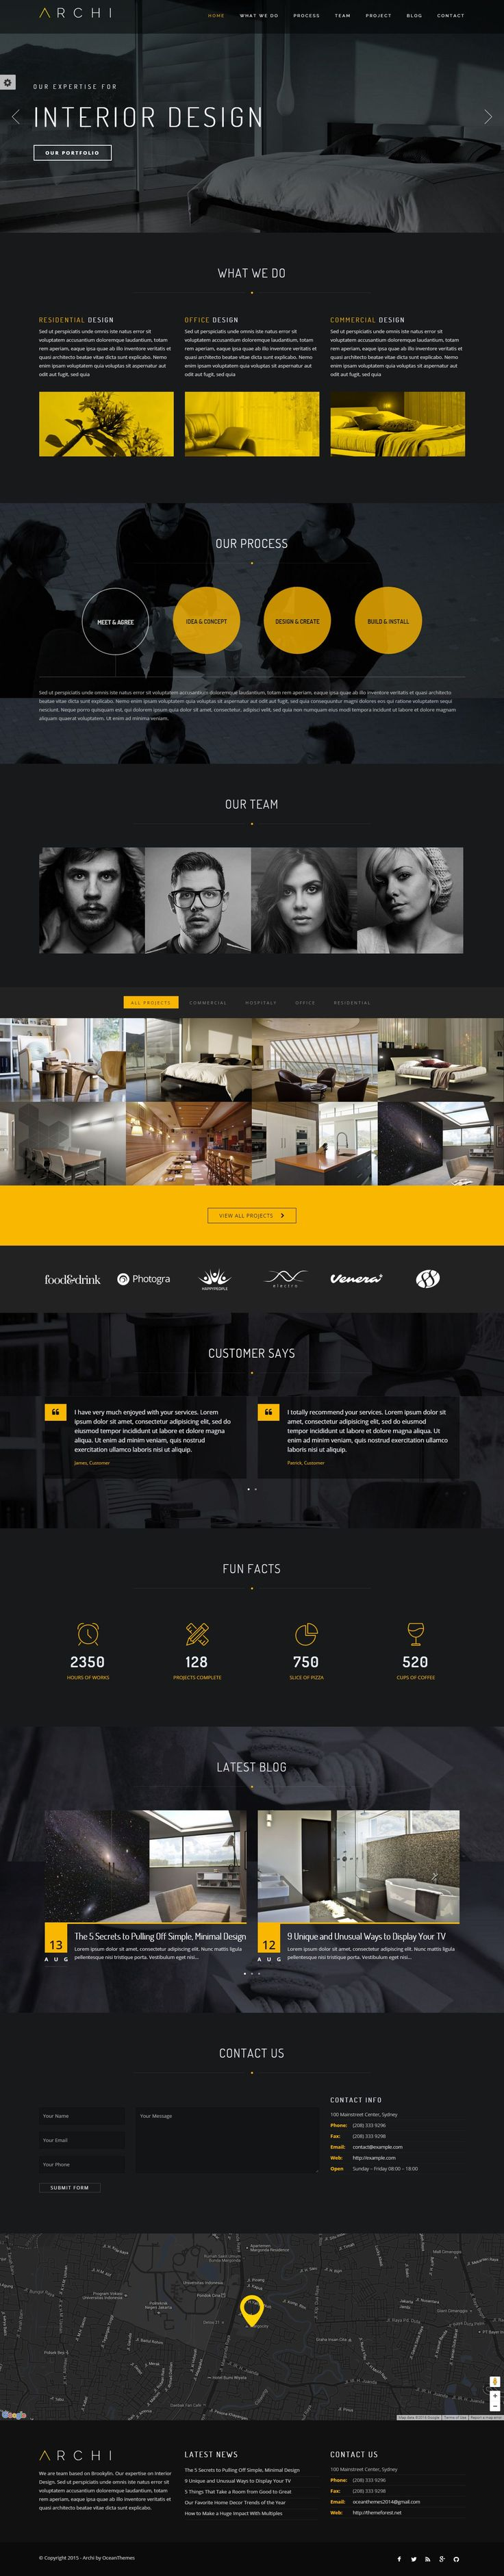 Archi has beauty design and bunch of features to make your website stand out of crowd. Powered by HTML 5, CSS 3, jQuery with flexibility of Bootstrap 3. Get Archi now! #Interior #design #Architect Download Now➝ http://themeforest.net/item/archi-interior-design-wordpress-theme/12649286?ref=Datasata